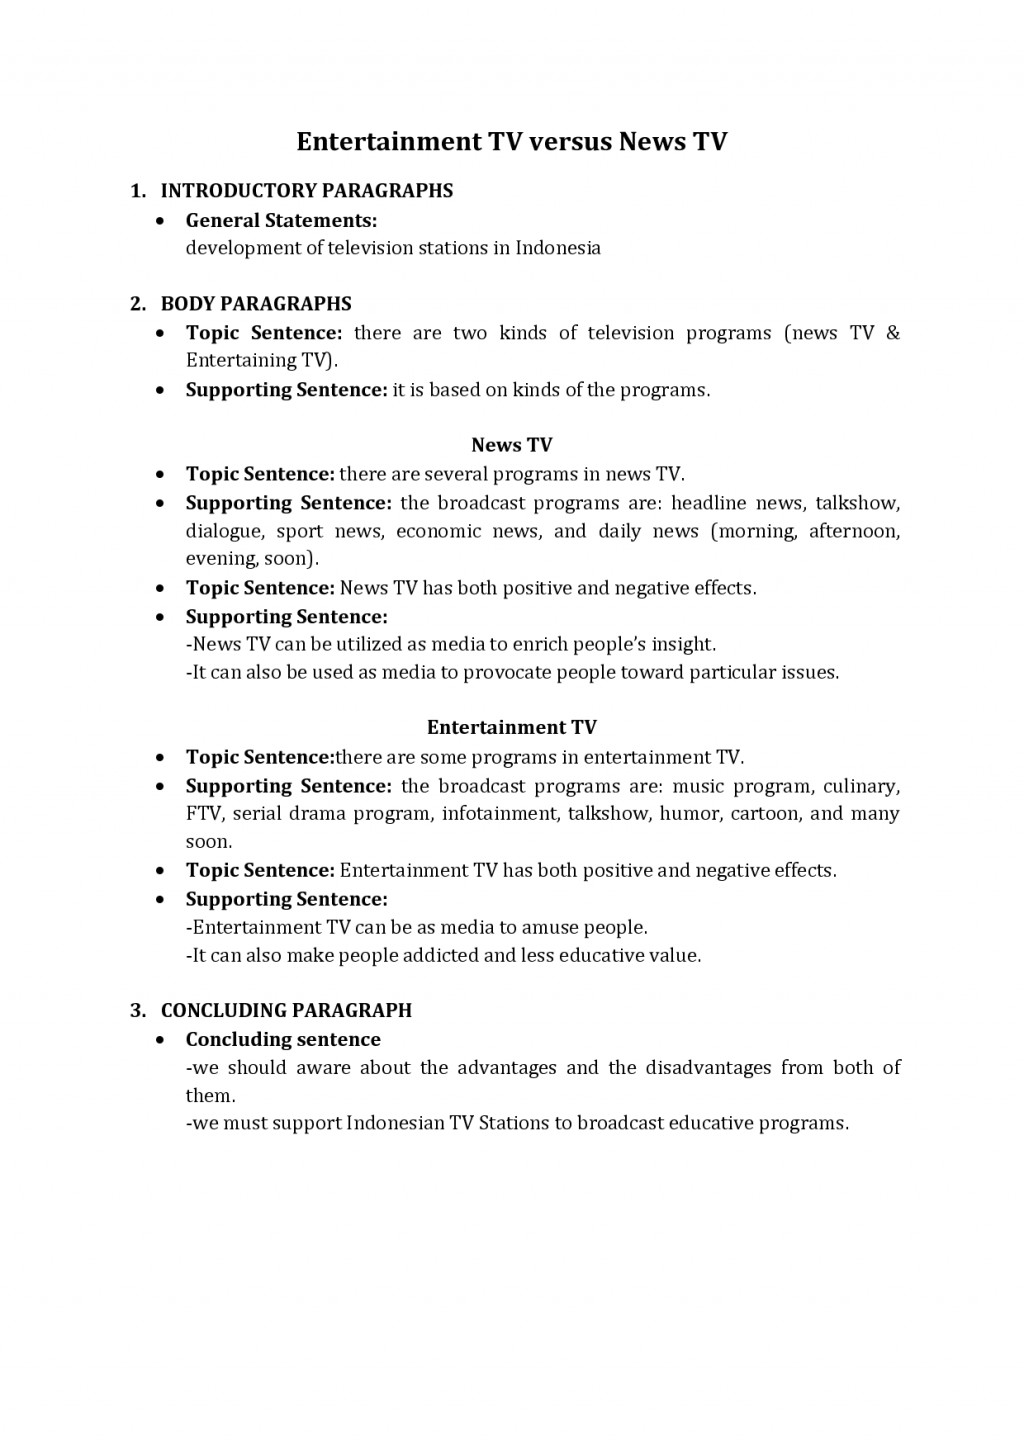 005 Fbunmxinib How To Write An Essay Outline Excellent In Mla Format College Large